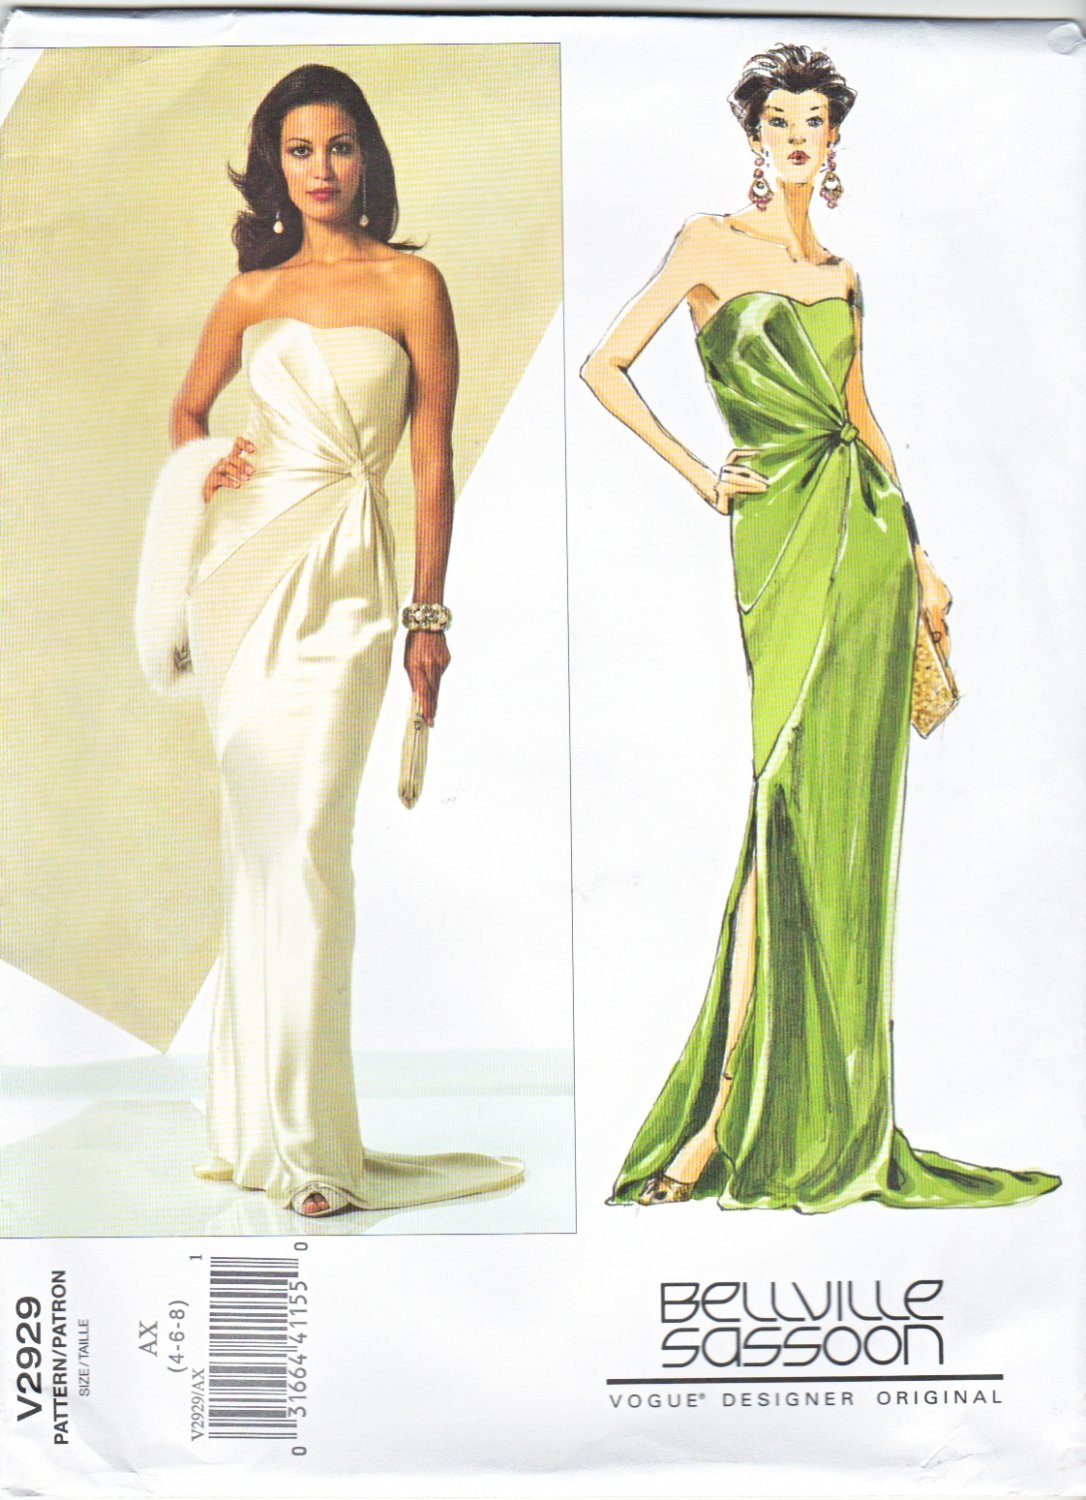 Vogue Sewing Pattern 2929 Misses Size 16-18-20 Bellville Sassoon Evening Gown Formal Dress Train